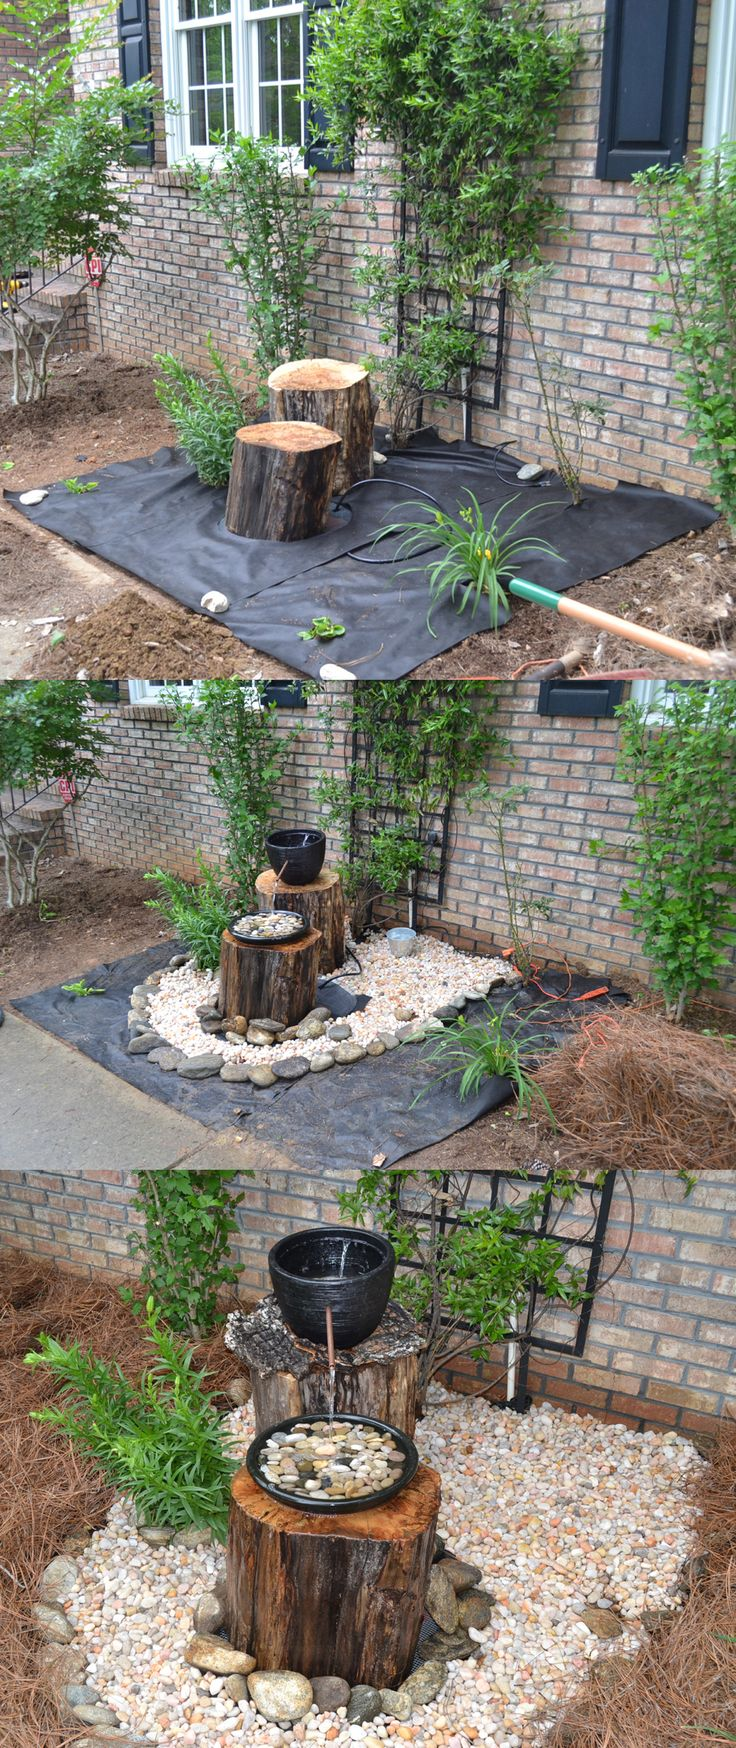 1000+ Images About RECYCLED GARDEN FOUNTAINS On Pinterest